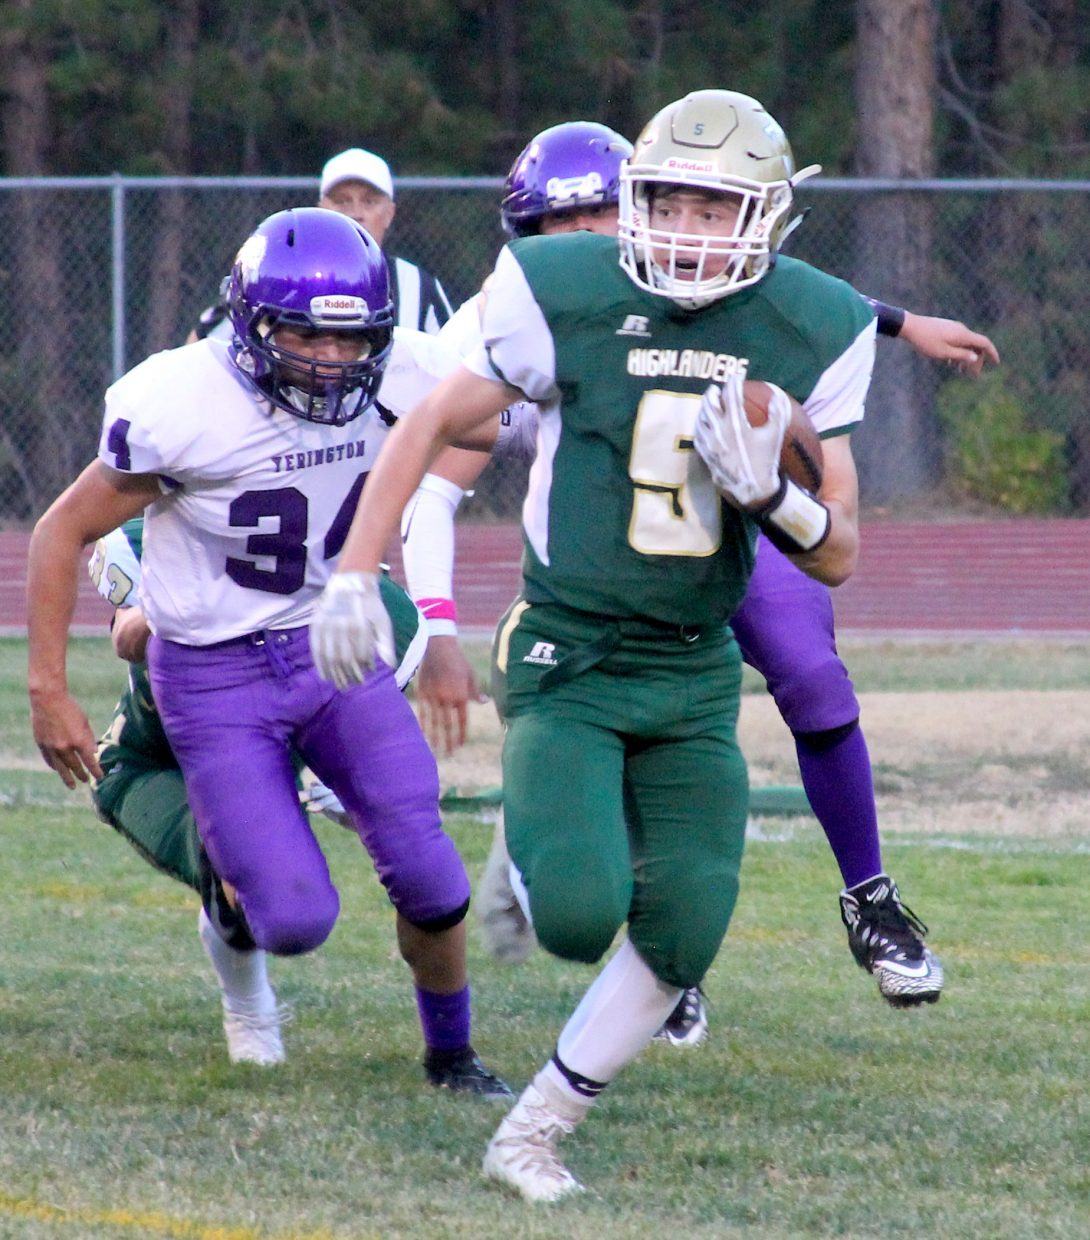 Incline's Brad Rye gains a chunk of yards in the first quarter. The sophomore finished with 95 yards on 13 carries, including an explosive 63-yard scoring run.